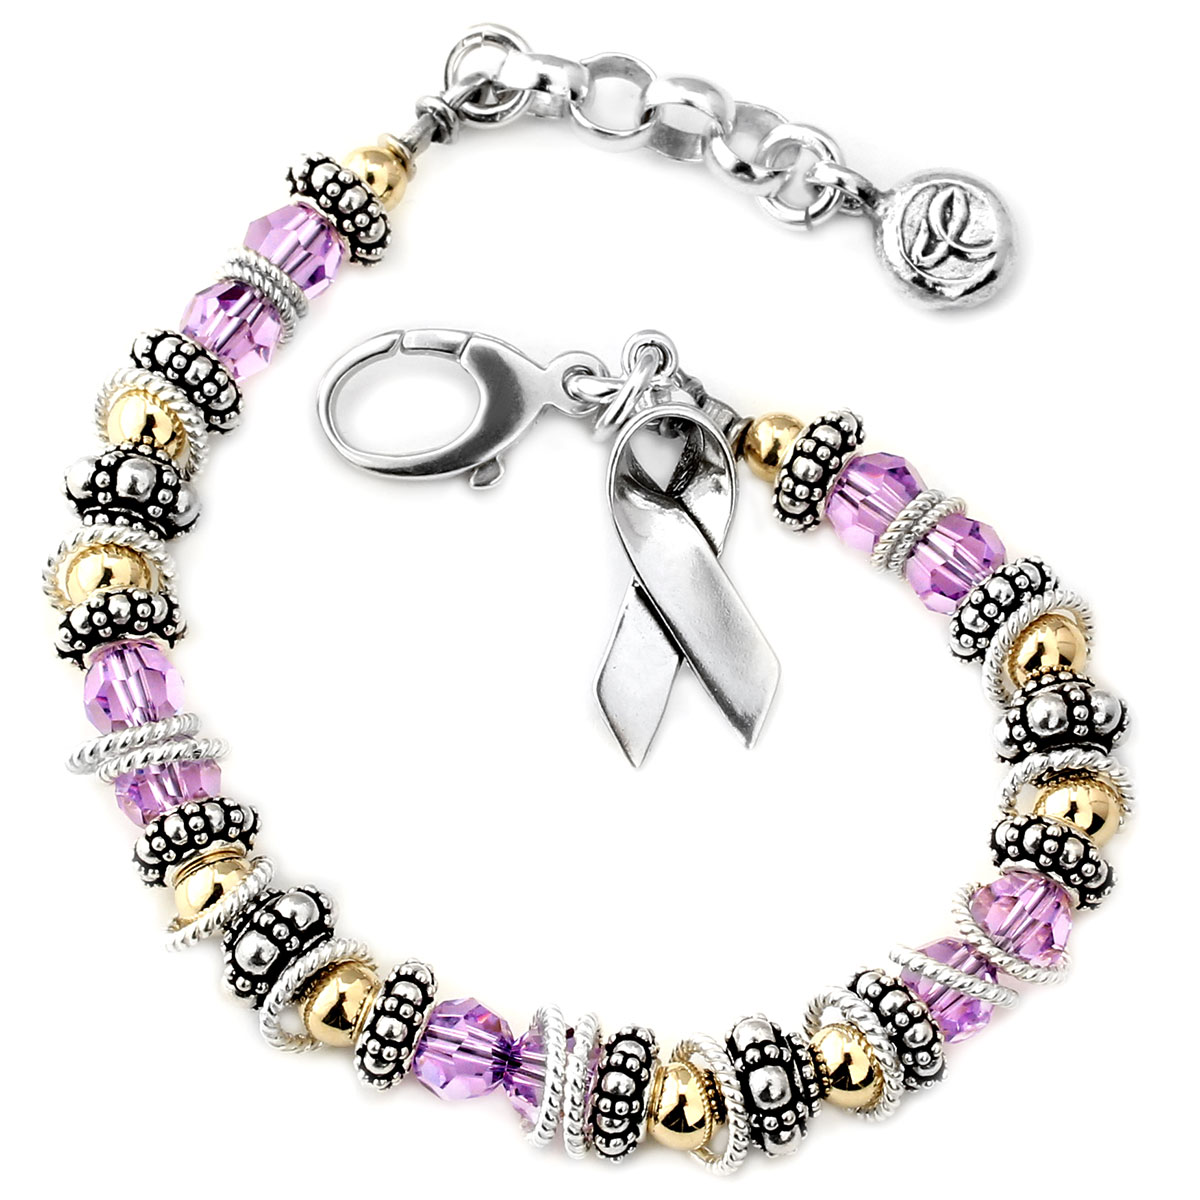 223089-Pancreatic/Testicular Cancer - Spectacular Awareness Bracelet